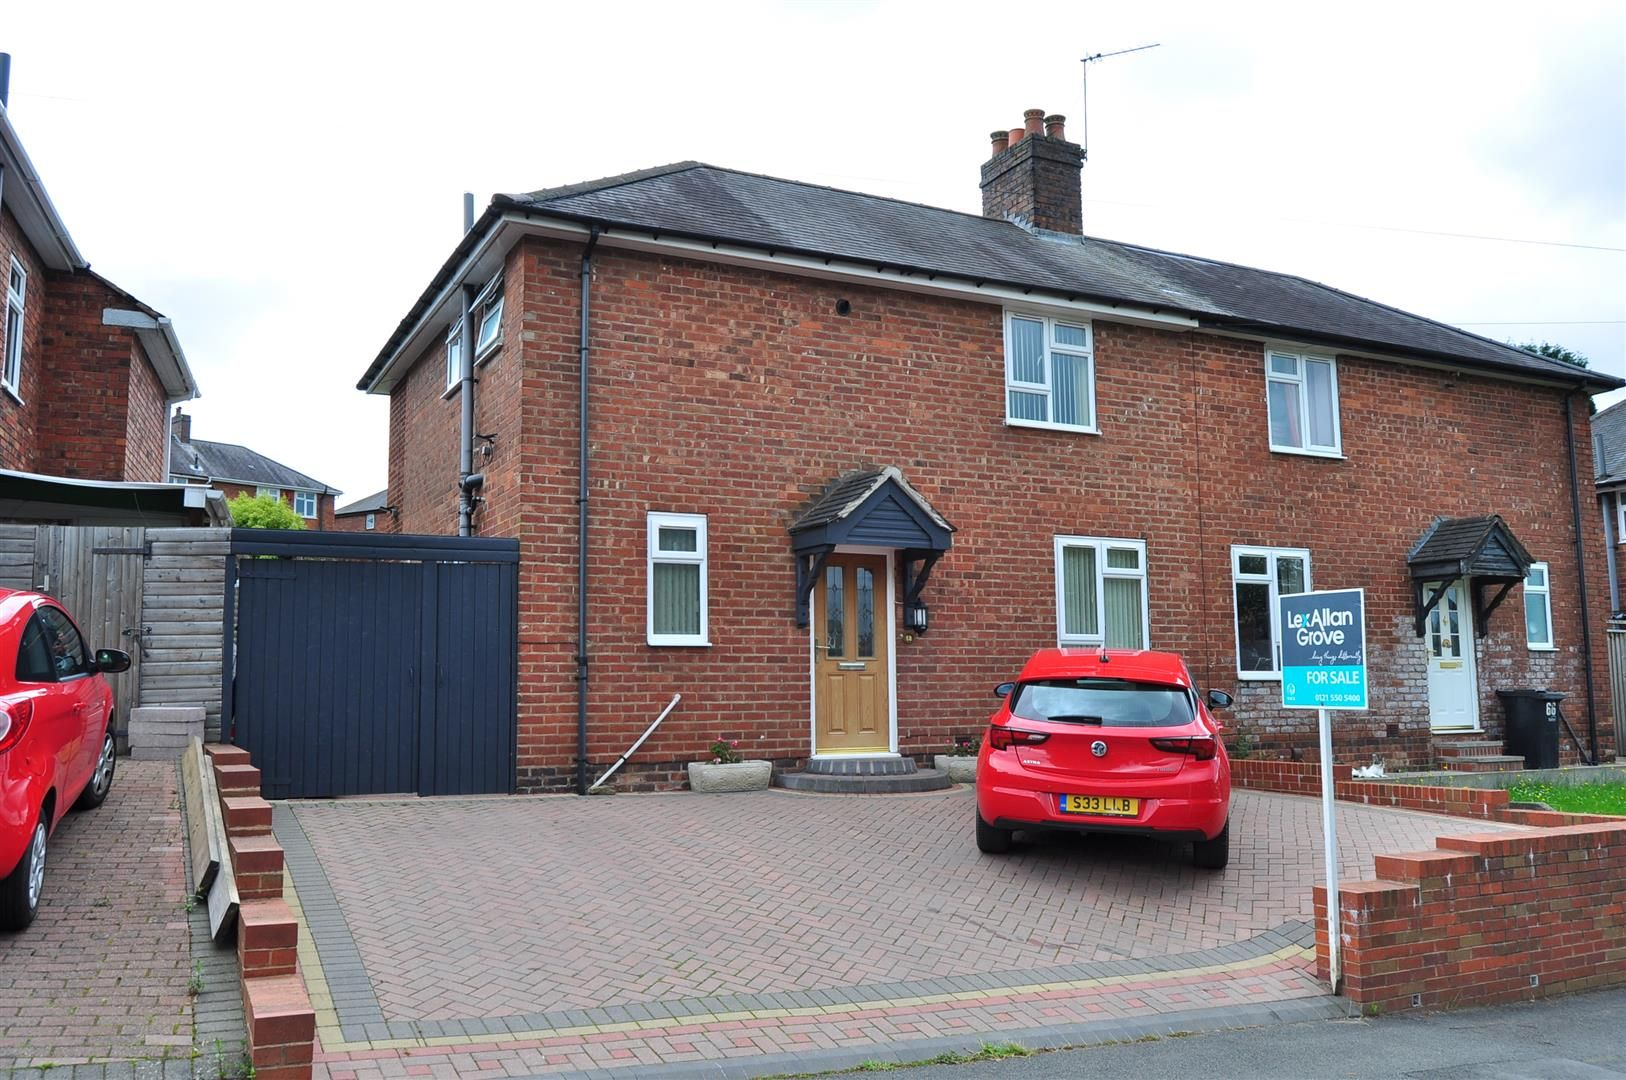 3 bed semi-detached for sale in Lower Gornal, DY3